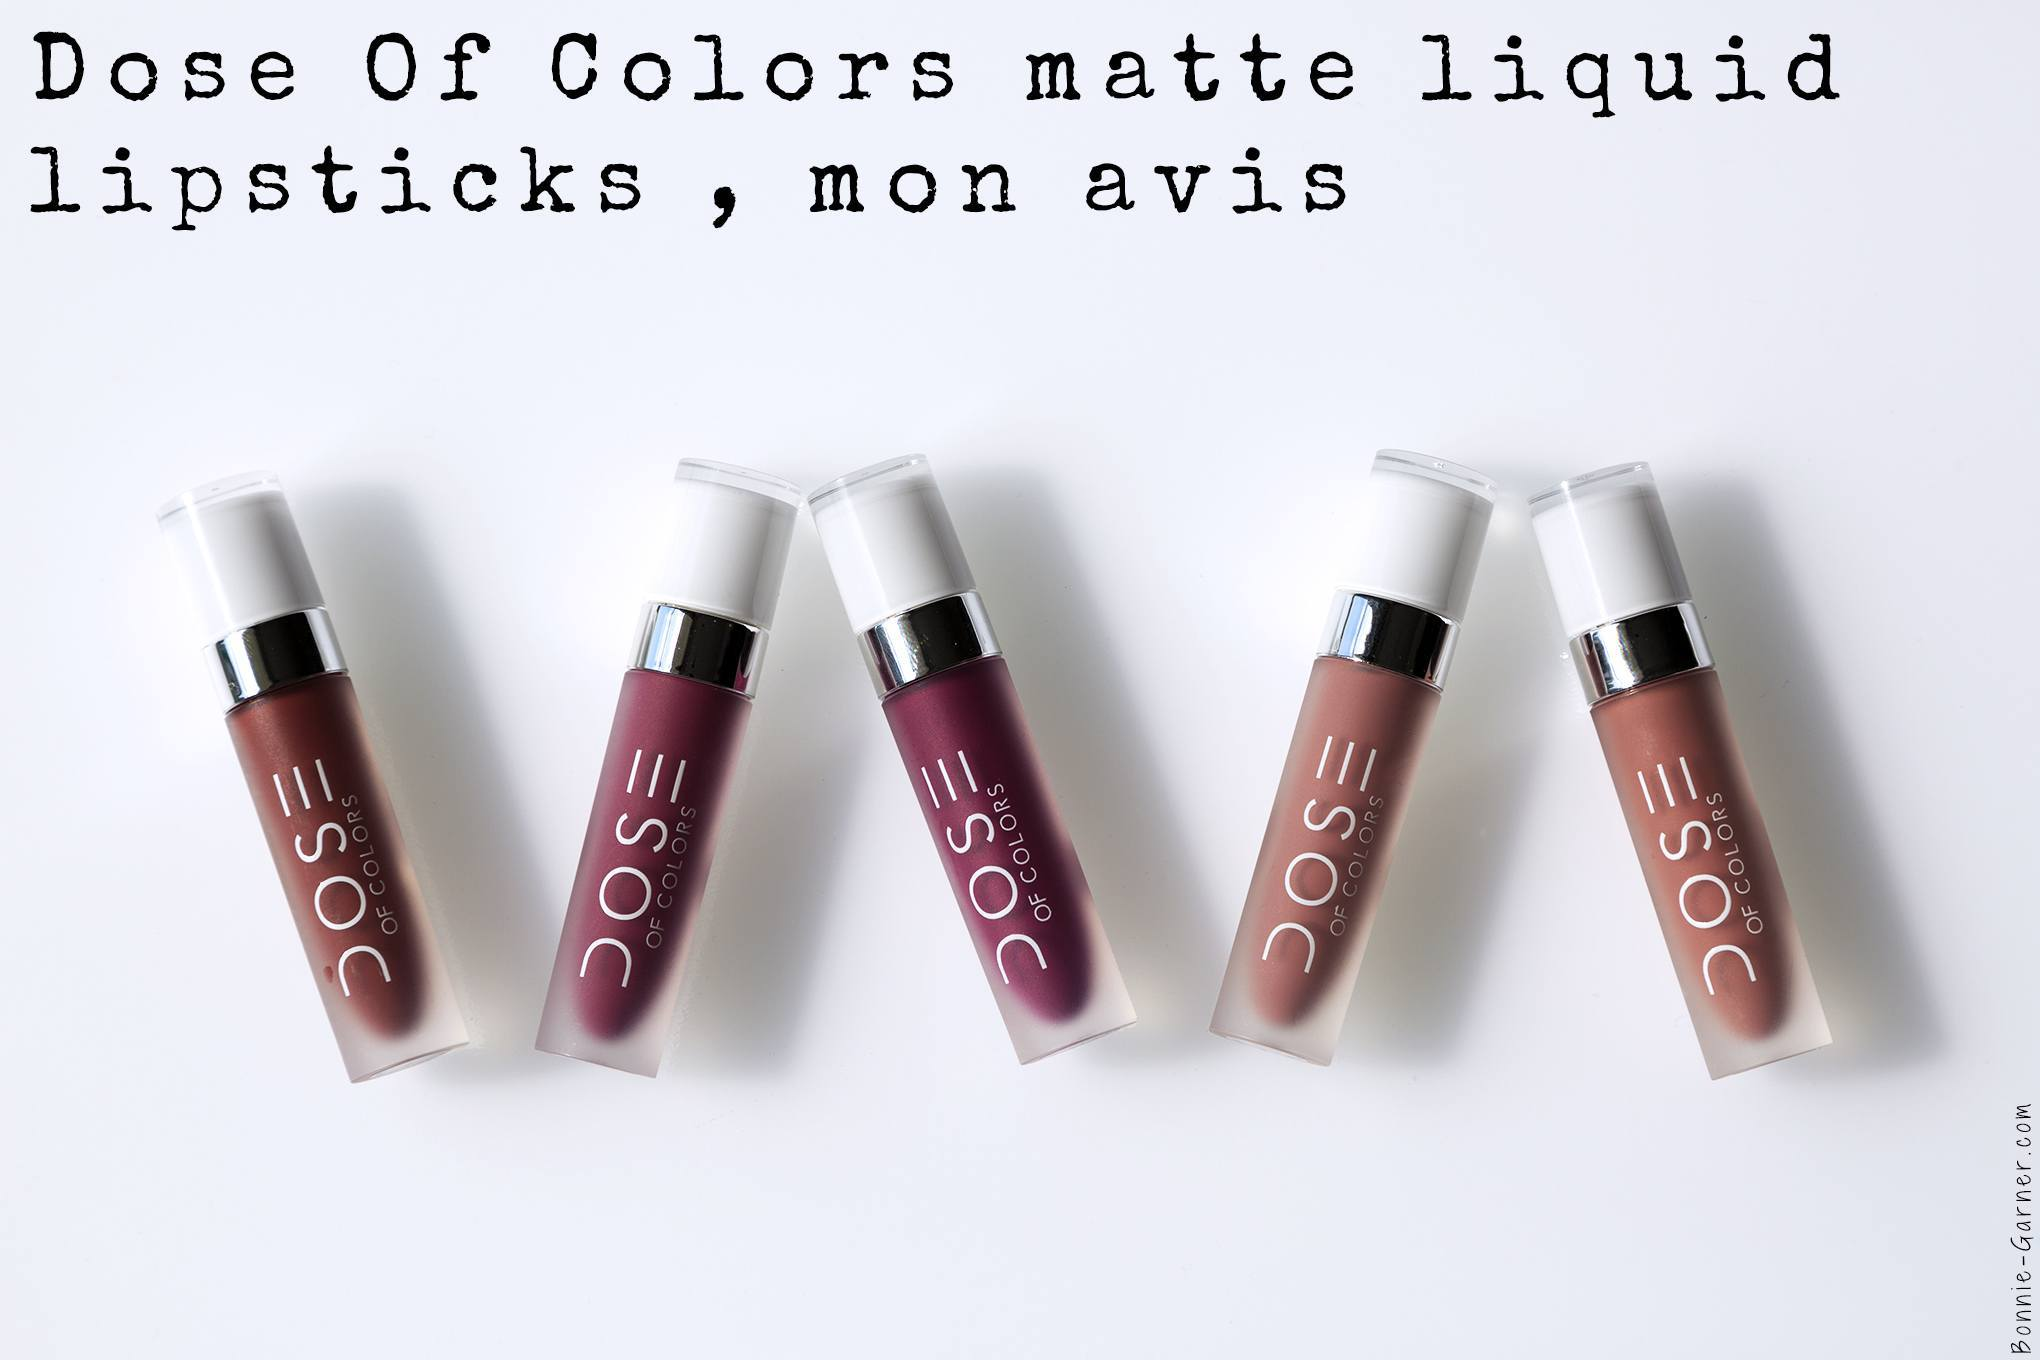 Dose Of Colors matte liquid lipsticks, mon avis